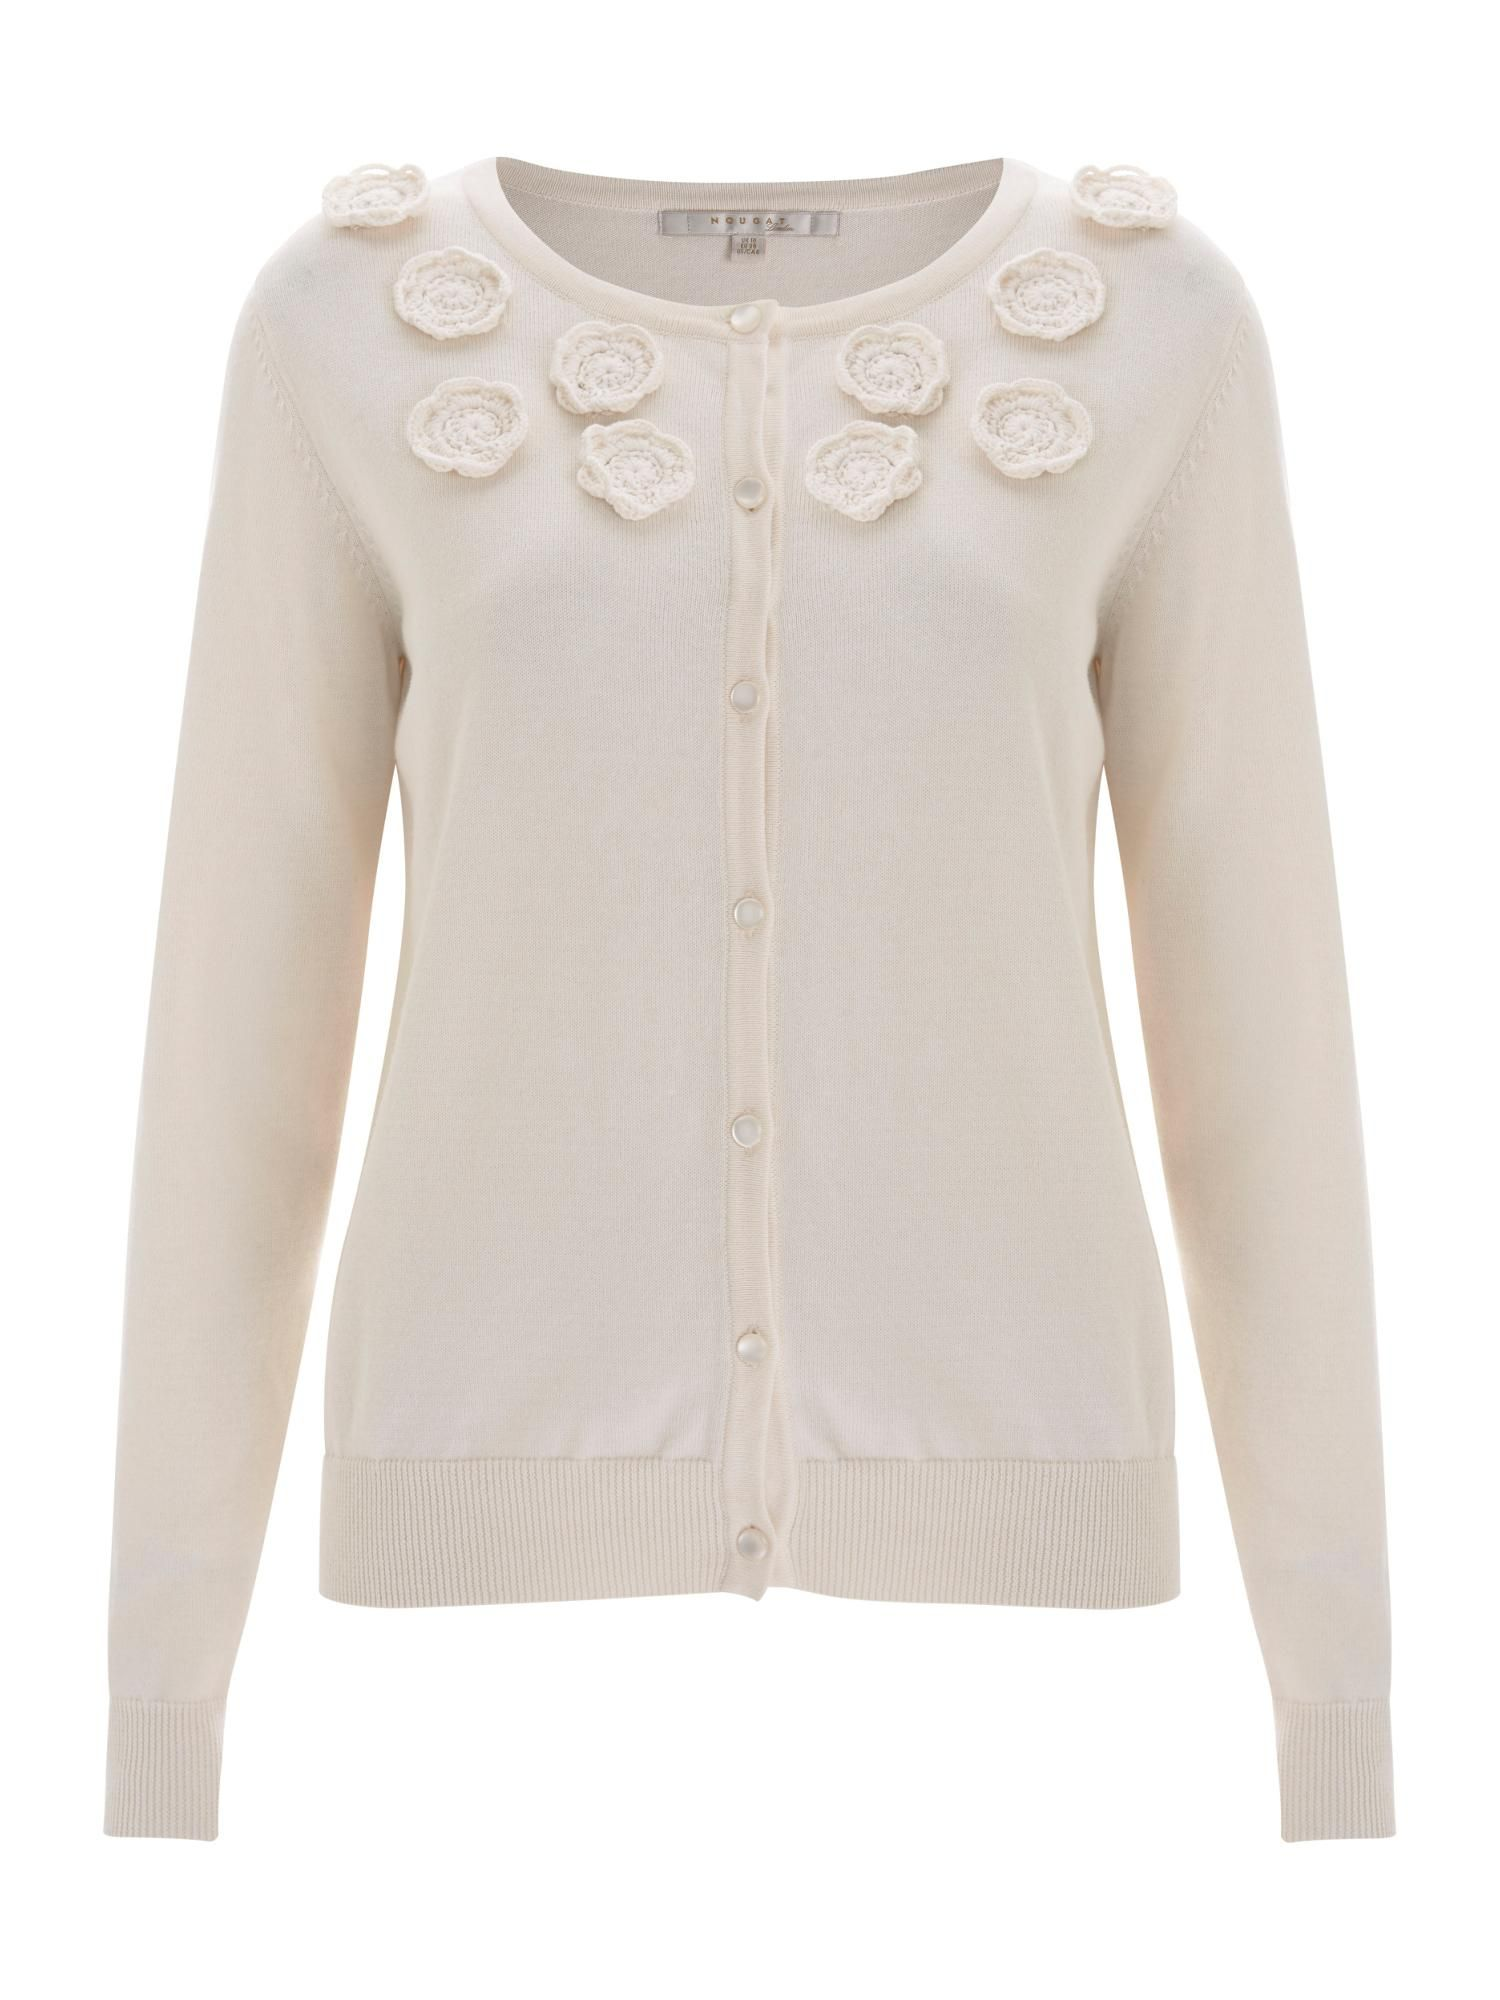 Nougat London Orchid Embroidered Cardigan | Cardigans online and ...